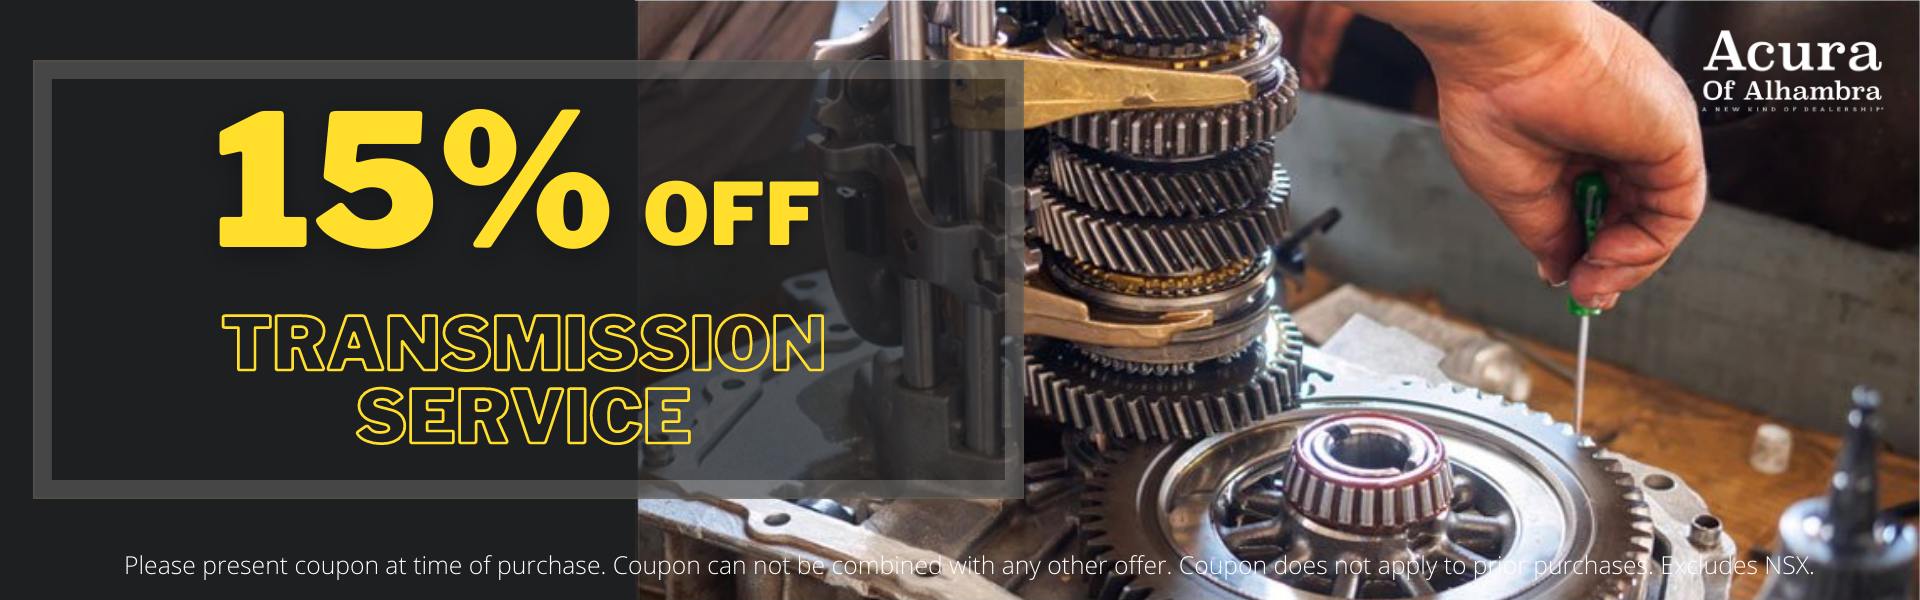 Web-Acura Service-Transmission Special